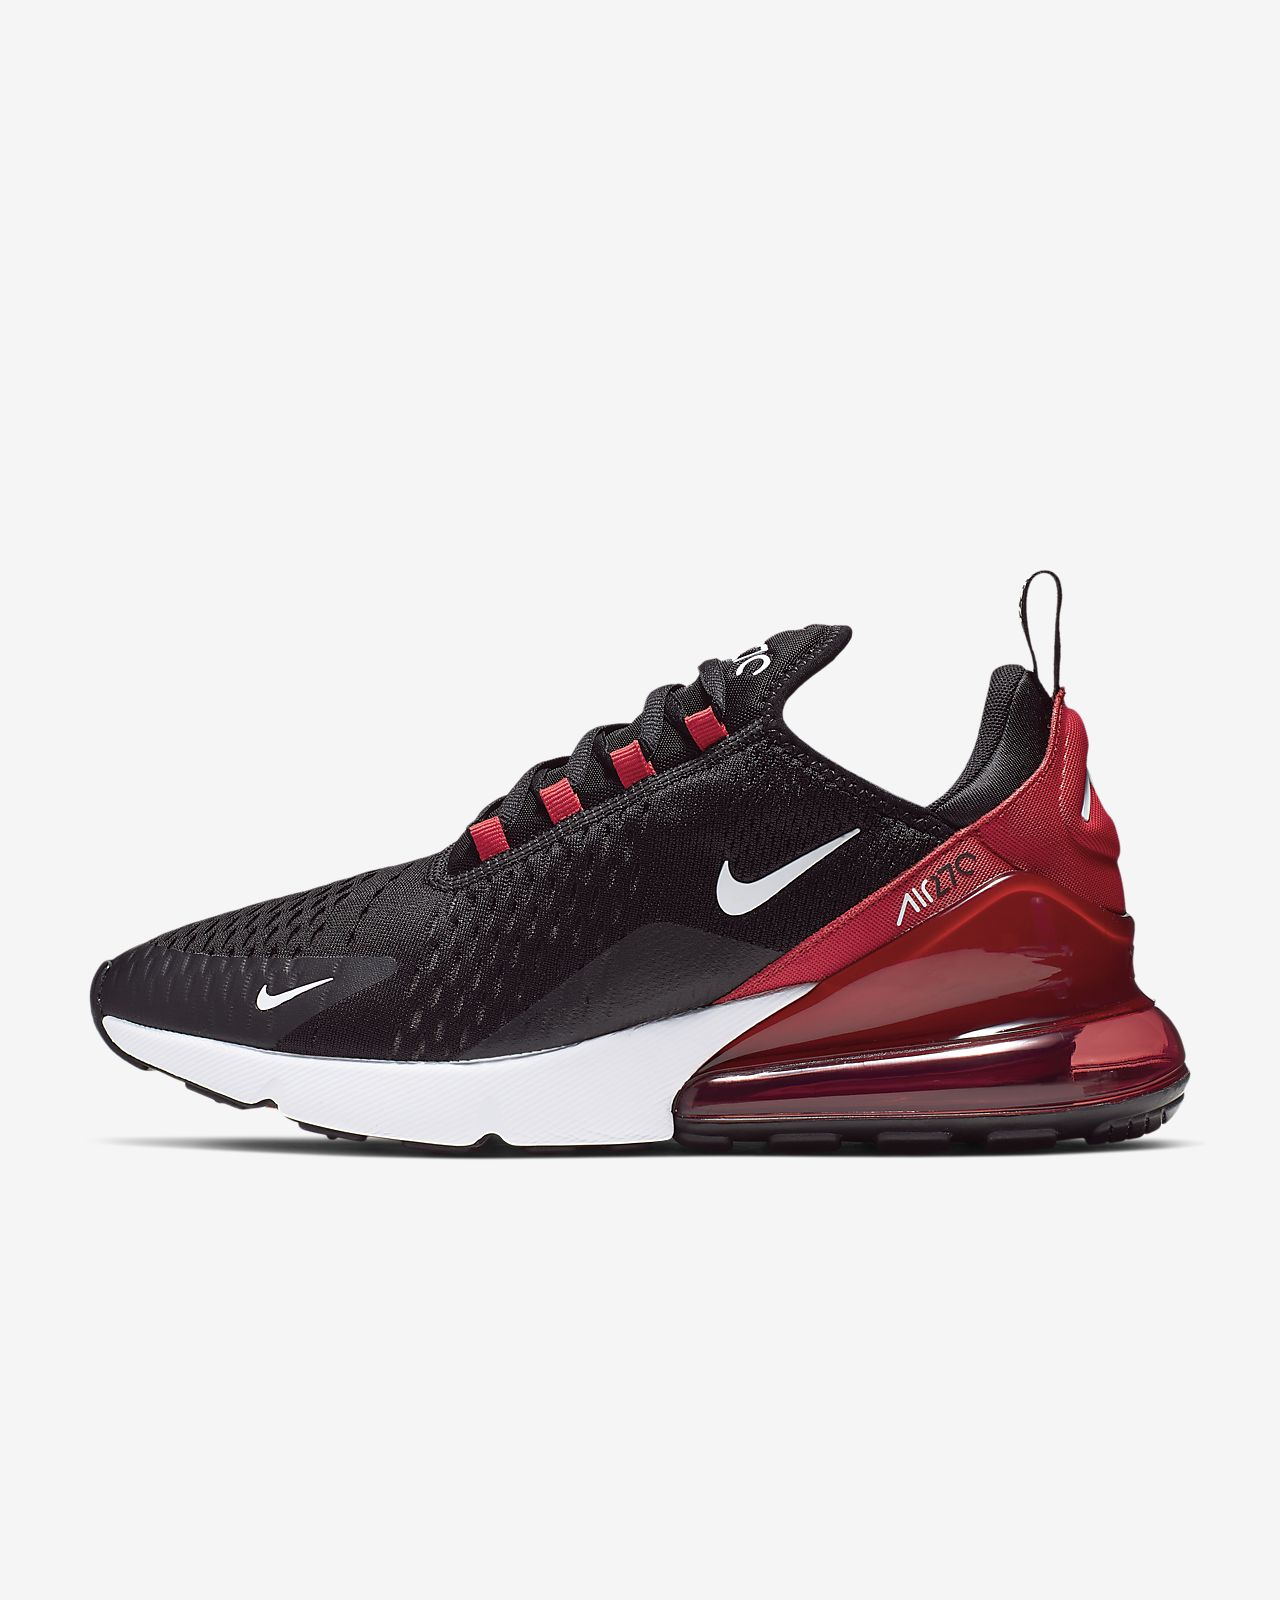 meet f623a 4f5fe Men s Shoe. Nike Air Max 270